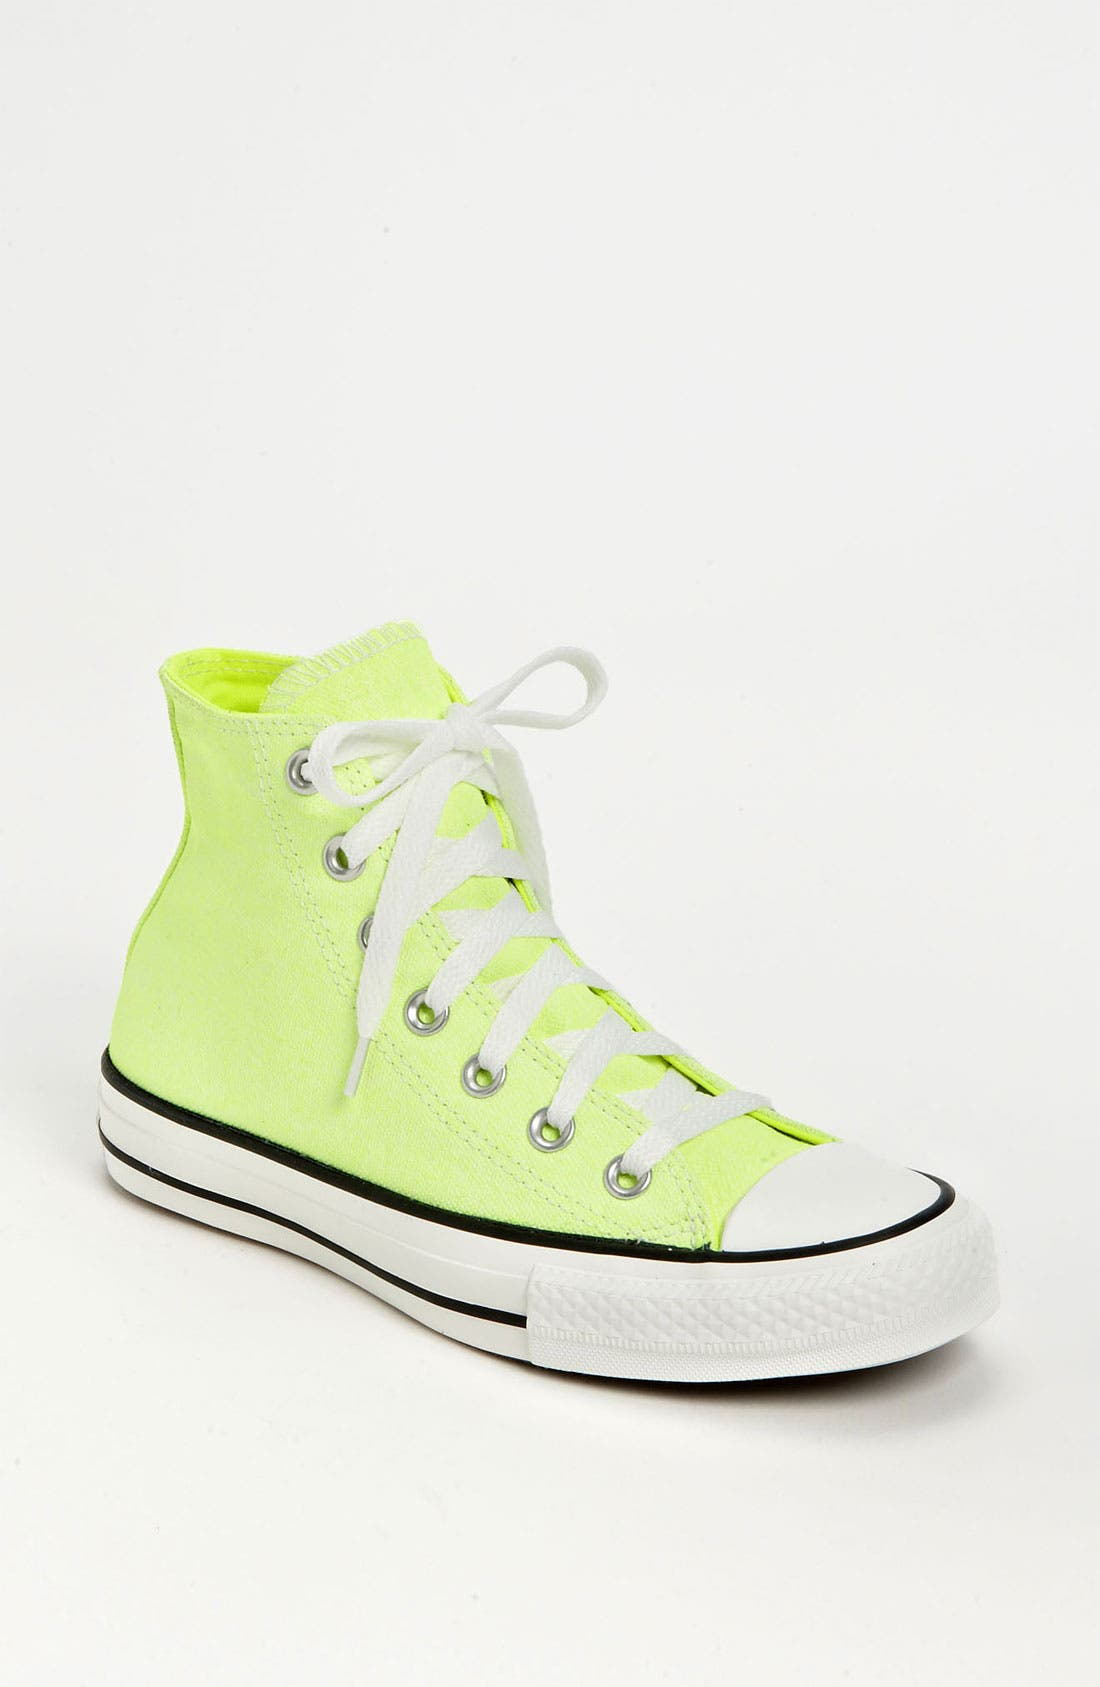 Alternate Image 1 Selected - Converse Chuck Taylor® All Star® Washed Neon High Top Sneaker (Women)